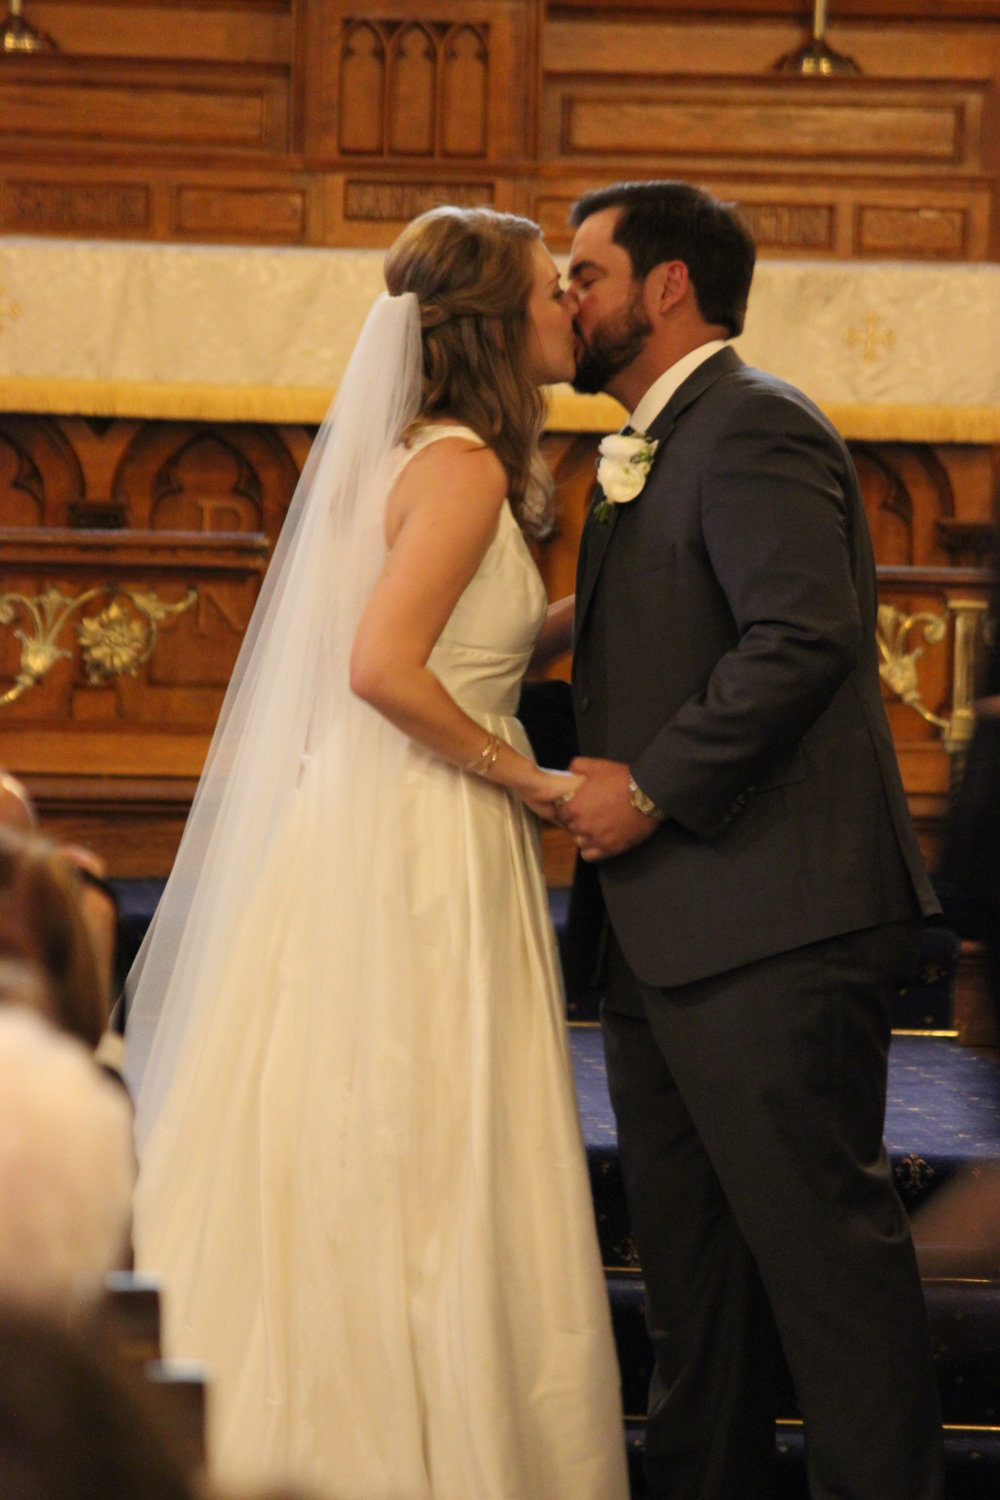 Their first married kiss…